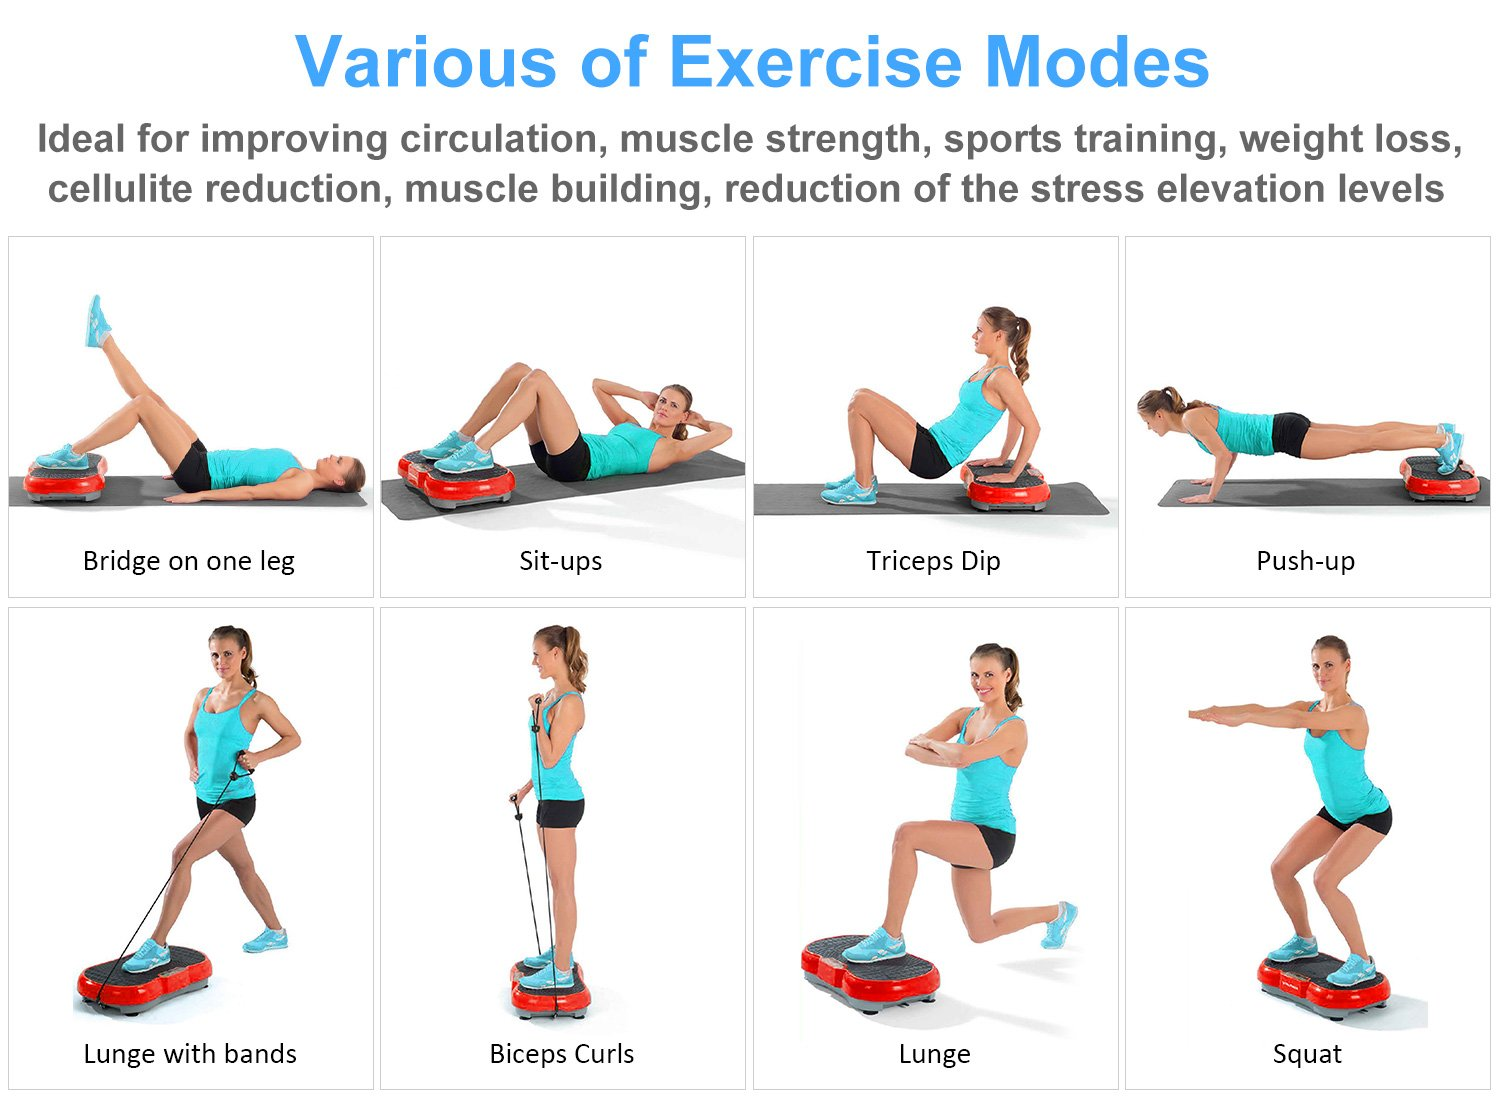 iDeer Vibration Platform Fitness Vibration Plates,Whole Body Vibration Exercise Machine w/Remote Control &Bands,Anti-Slip Fit Massage Workout Vibration Trainer Max User Weight 330lbs (Red09006) by IDEER LIFE (Image #5)